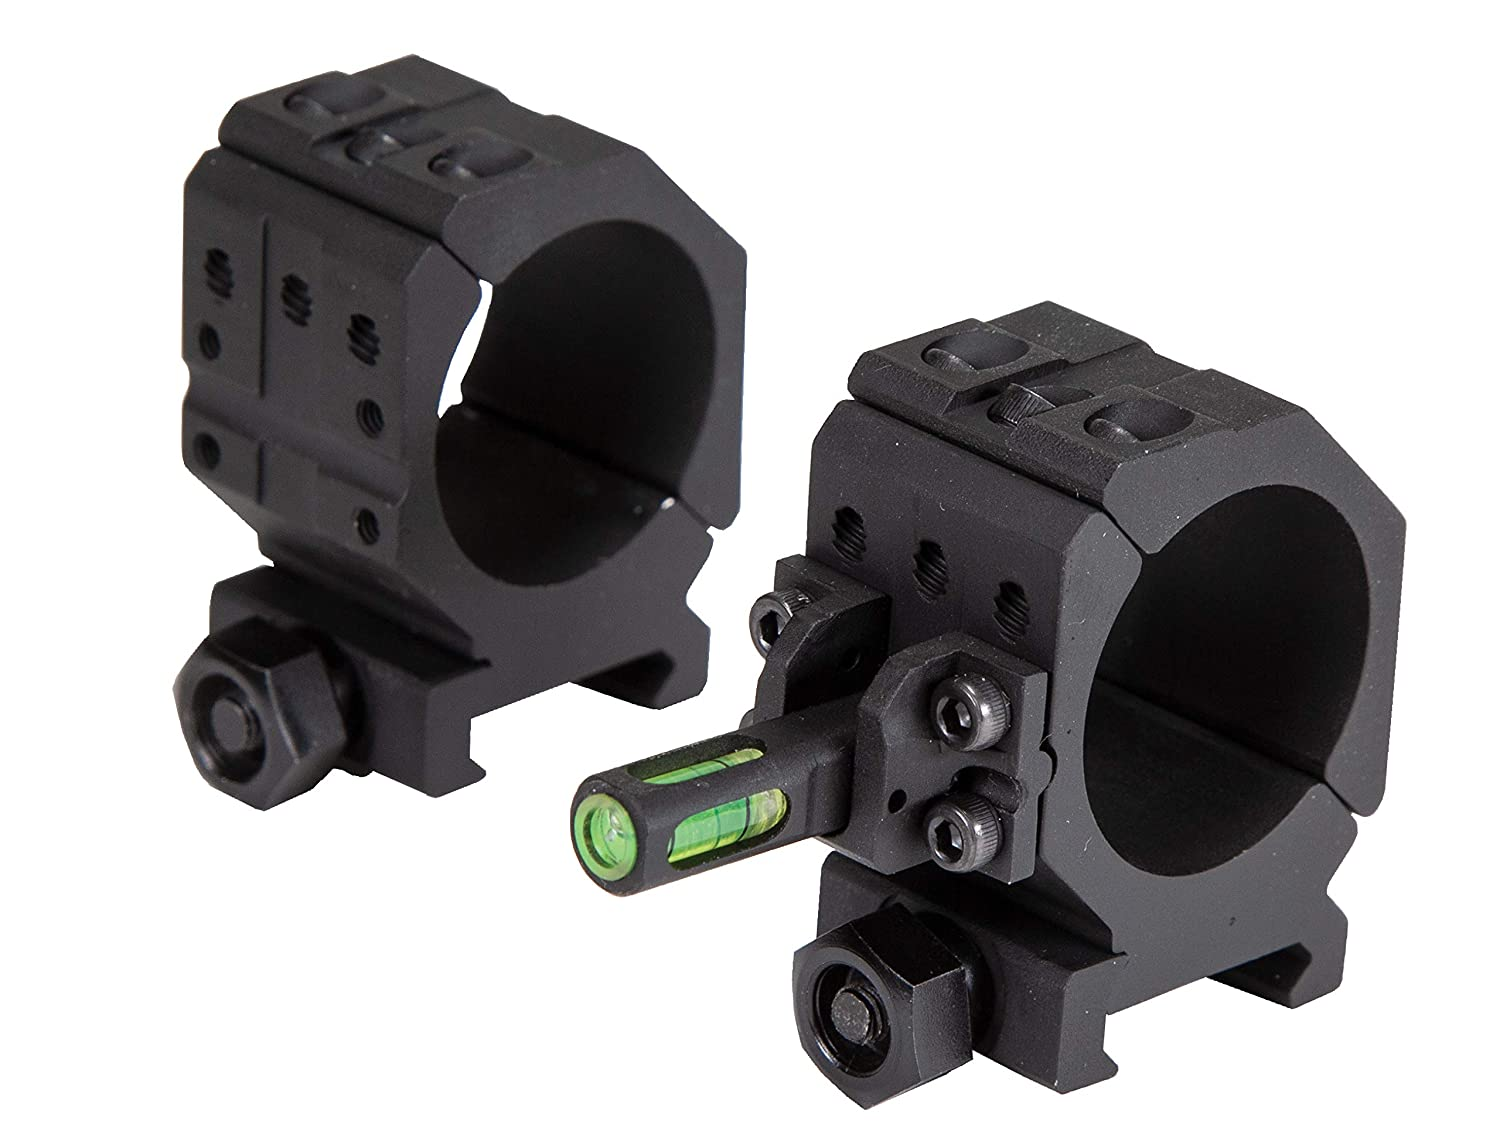 Wheeler 2 Piece Picatinny Rail Scope Rings with Flat Top Shooting and Gunsmithing 6-Hole Design and Integrated Anti-Cant Indicator for Leveling